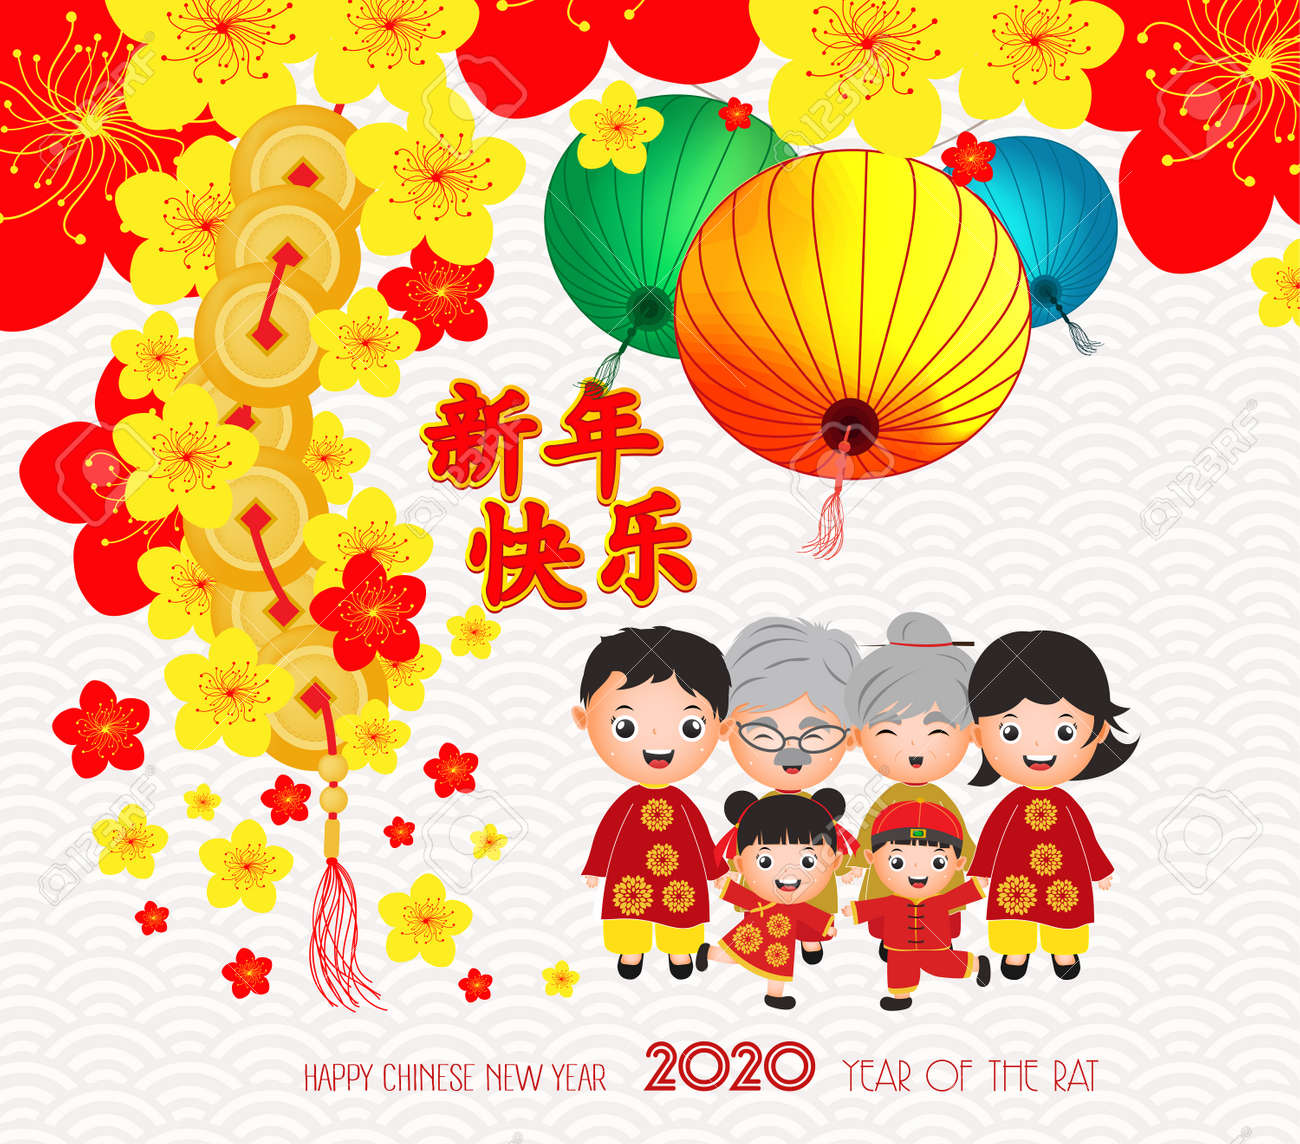 New Words 2020.2020 Chinese New Year Cute Family Happy Smile Chinese Words